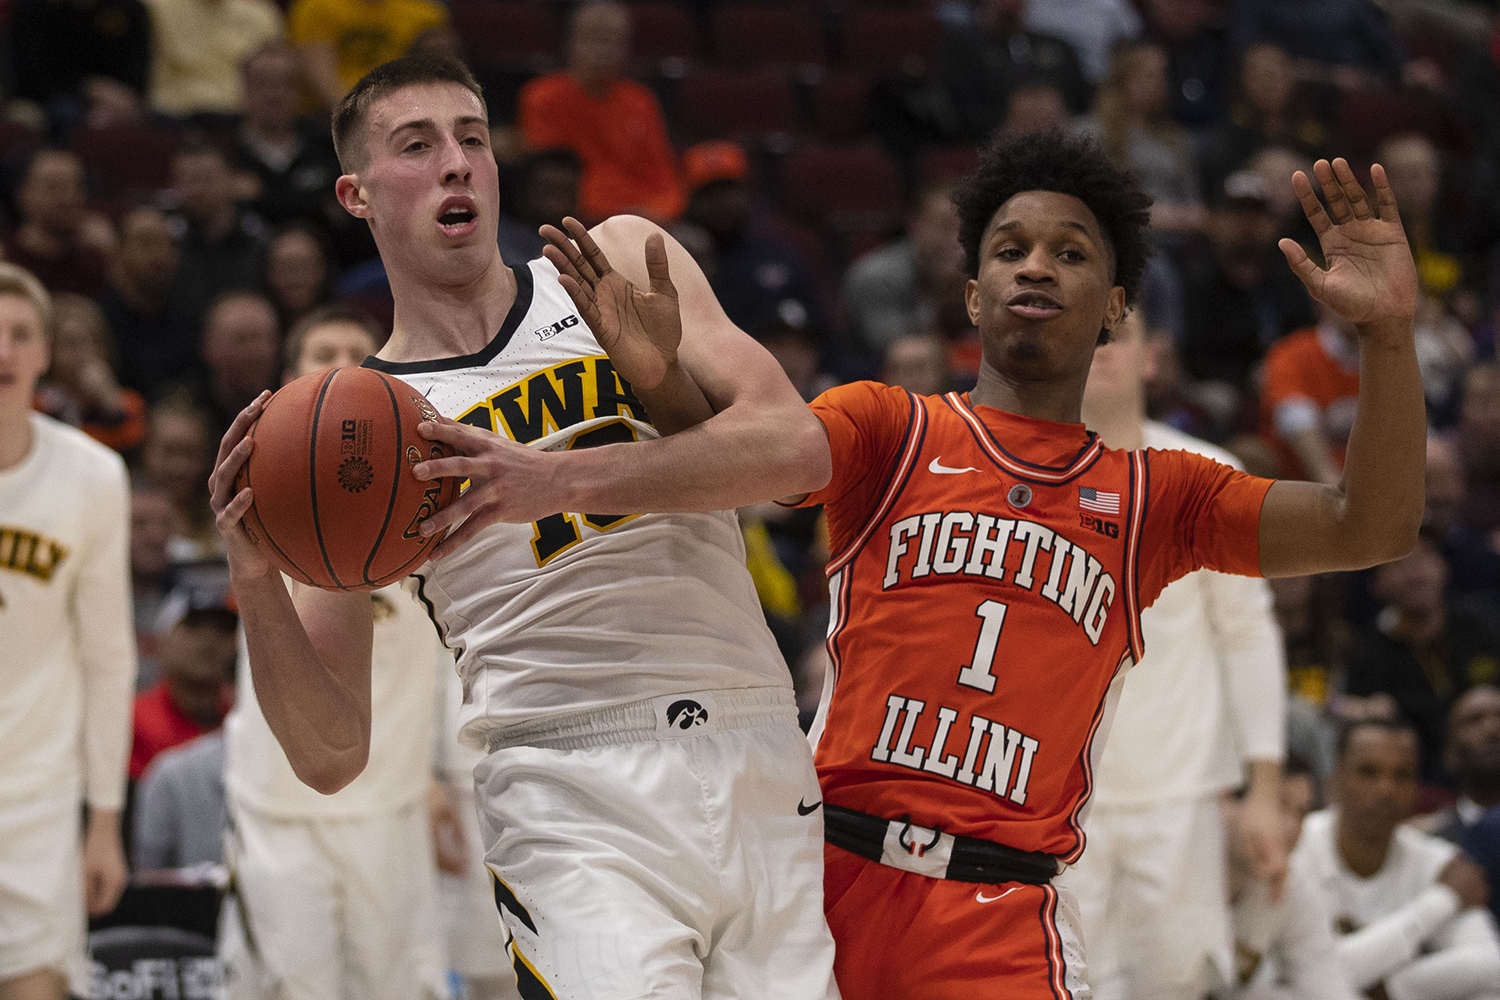 Iowa guard Joe Wieskamp and Illinois guard Trent Frazier fight for control of the ball during the Iowa/Illinois Big Ten Tournament men's basketball game in the United Center in Chicago on Thursday, March 14, 2019. The Hawkeyes defeated the Fighting Illini, 83-62.